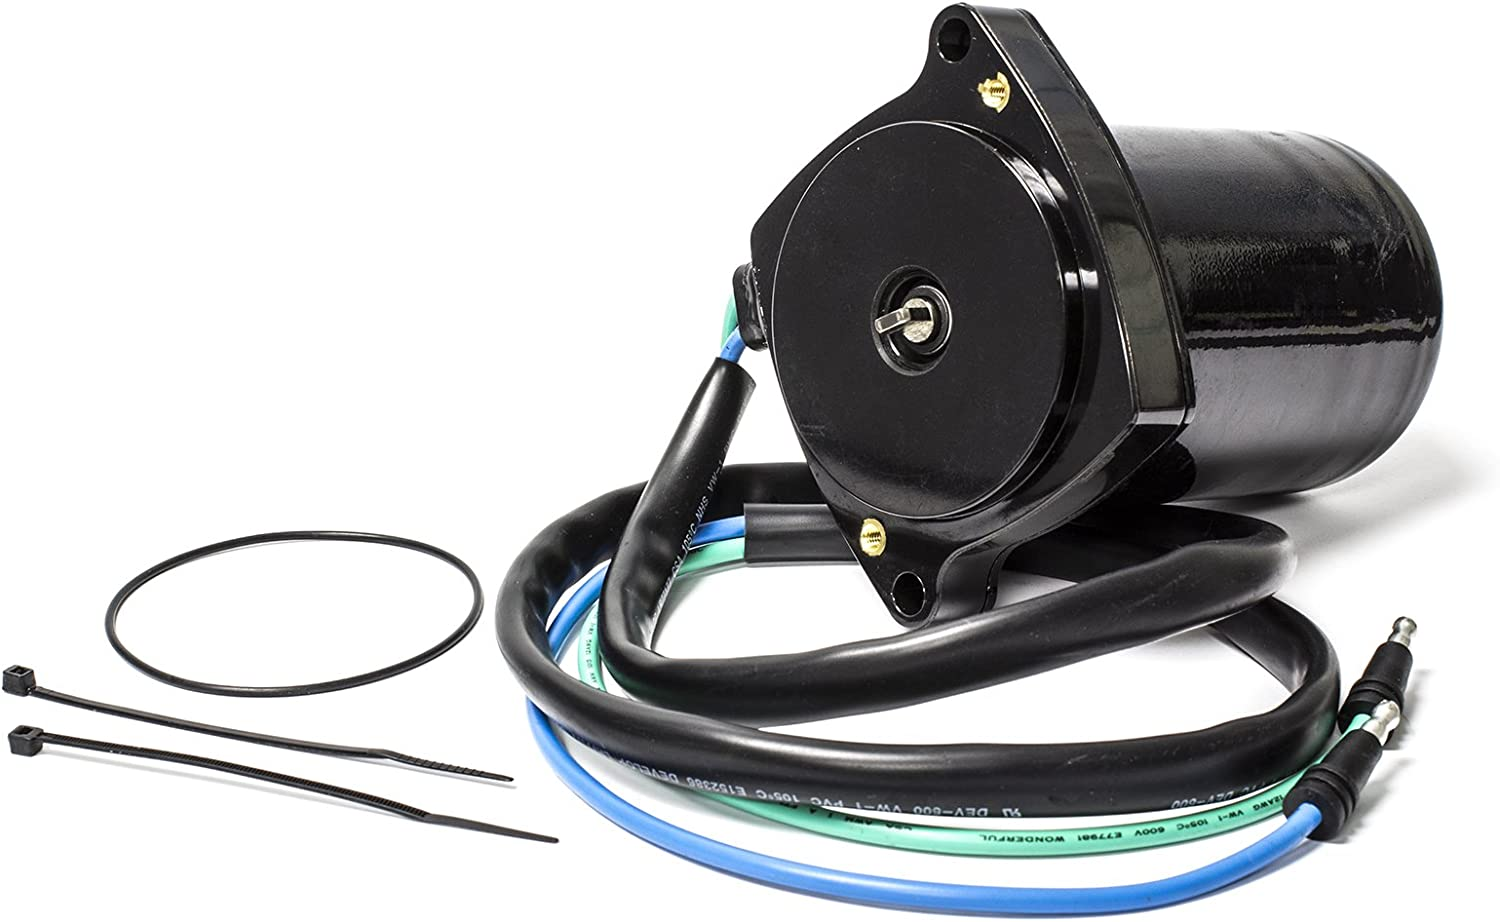 Sierra 18-6773 Marine Power Trim Motor for Mercury/Mariner Outboard Motor